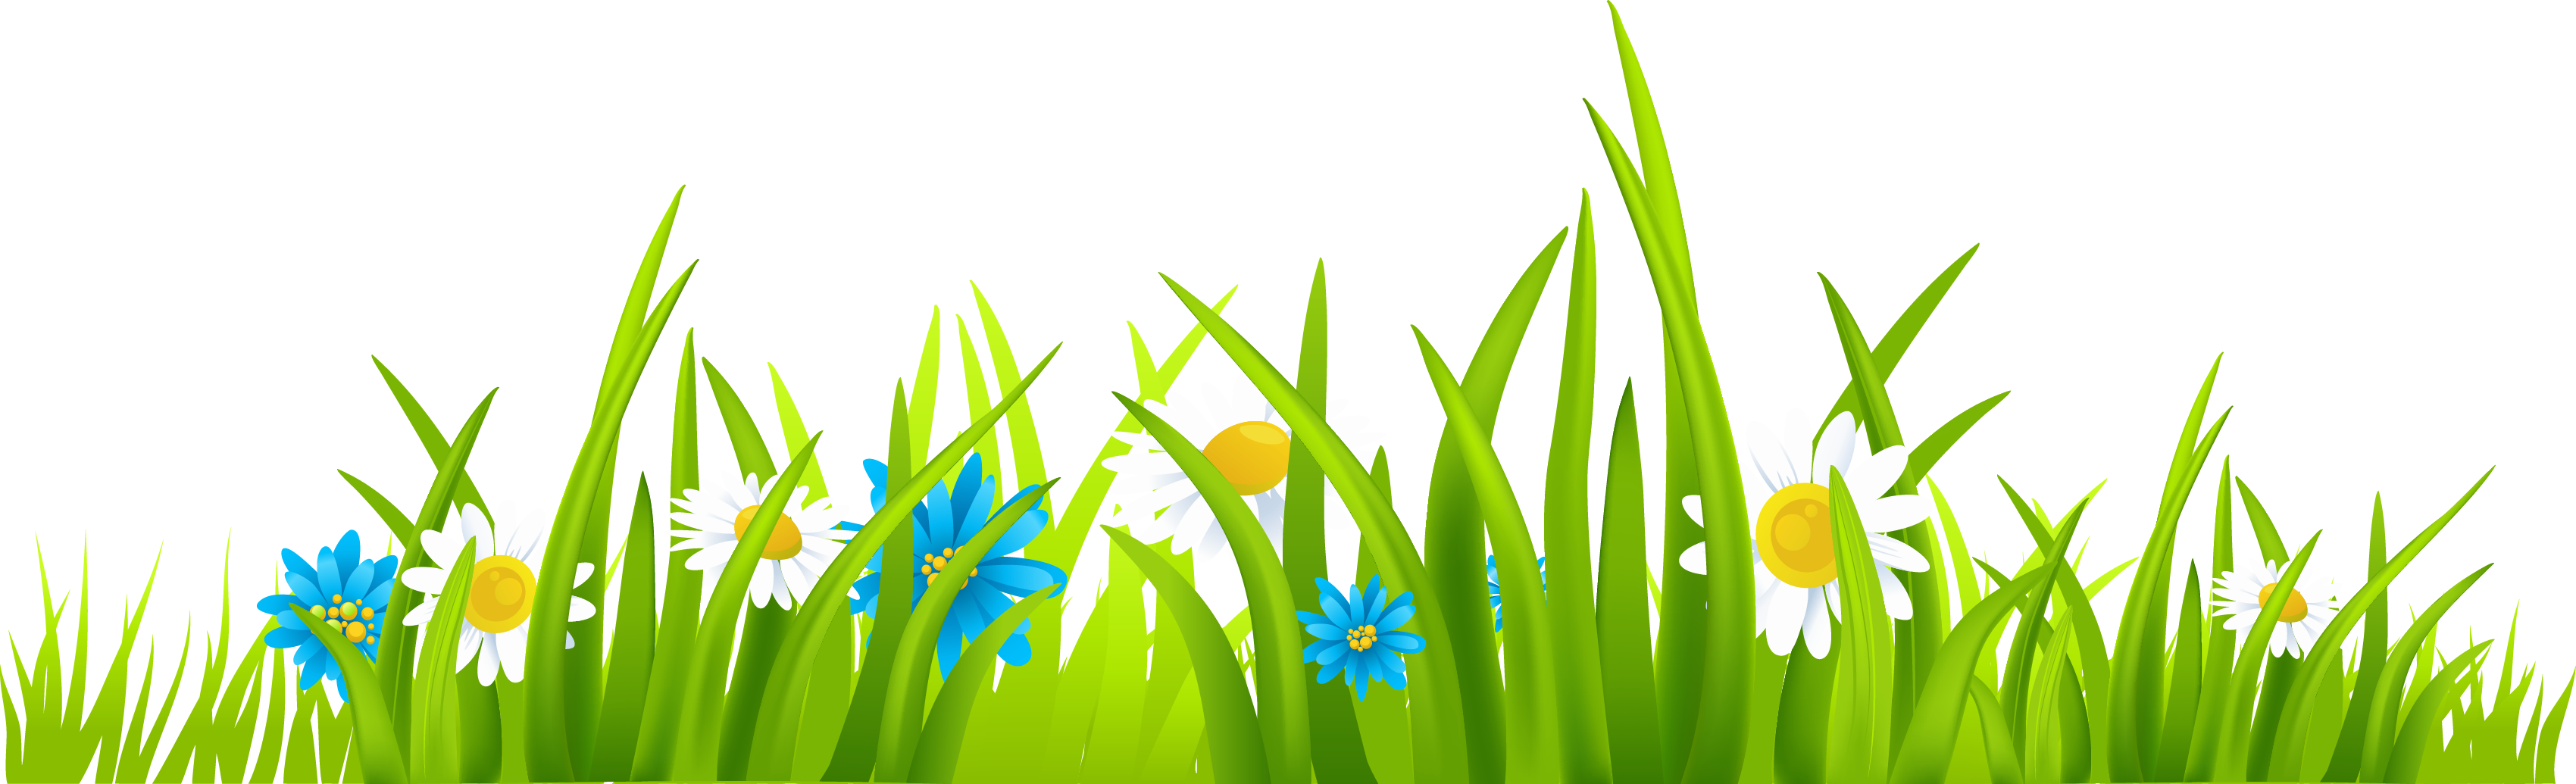 Grass clipart #10, Download drawings